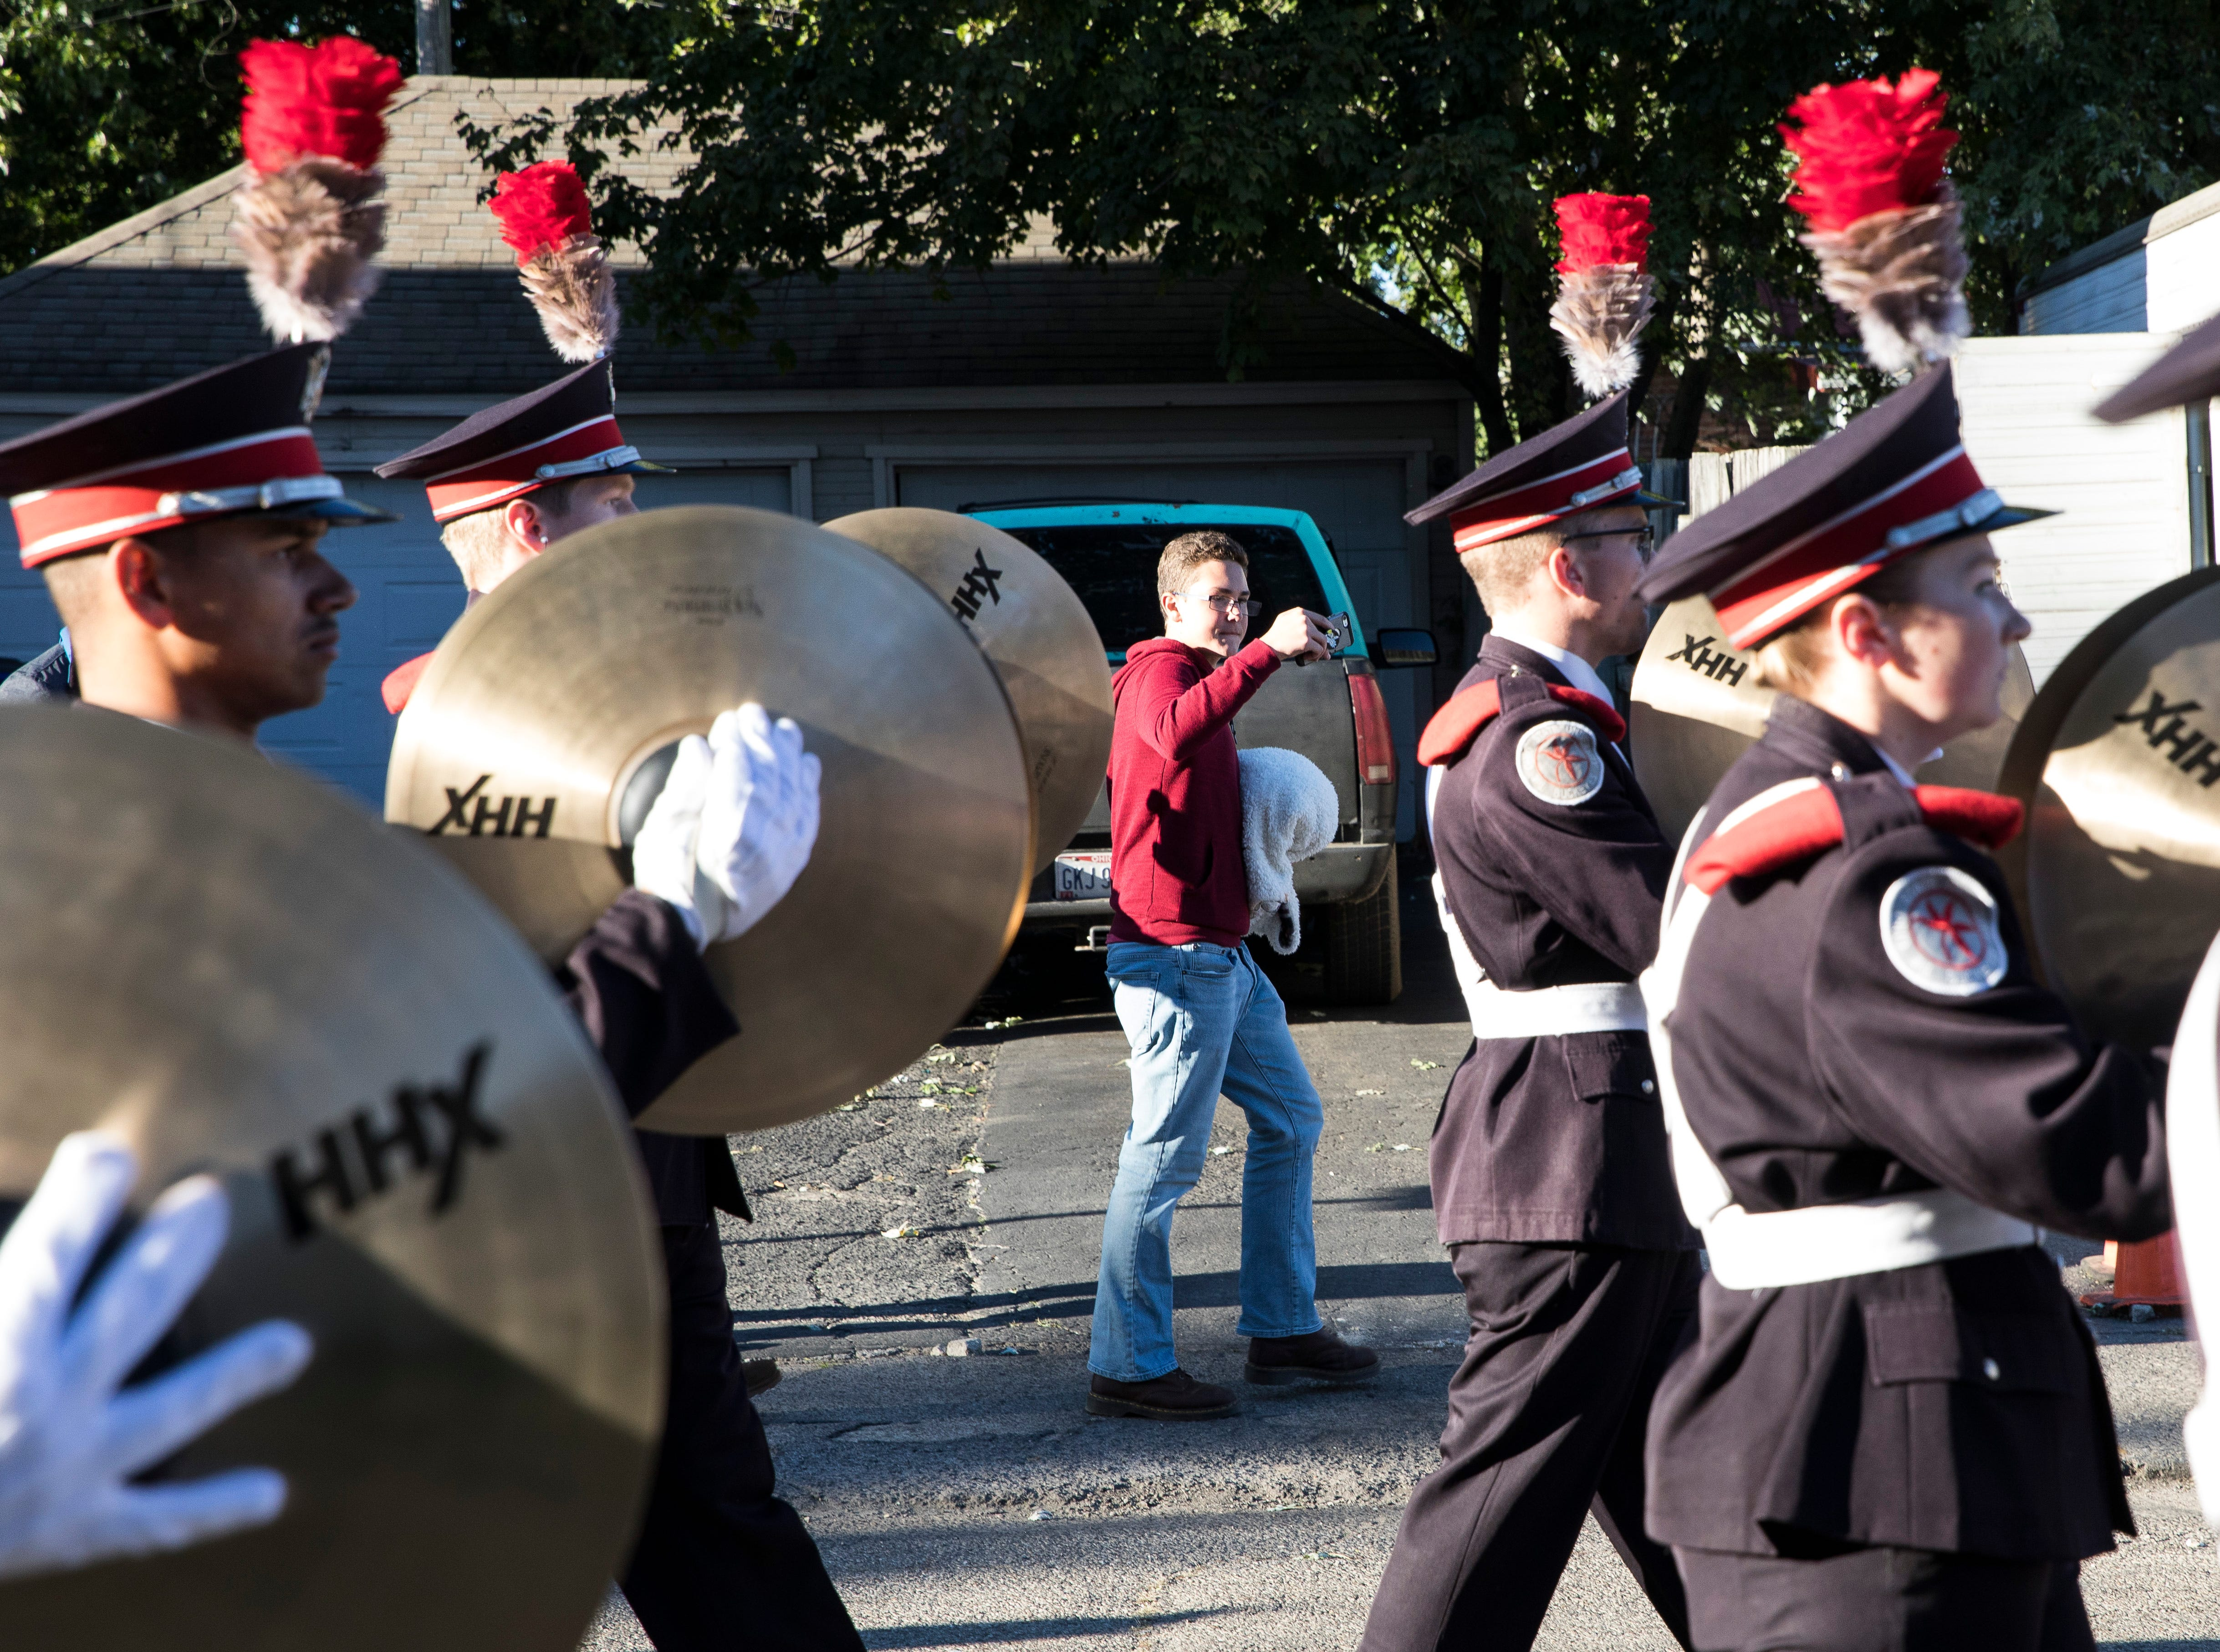 Chillicothe student Trace Yocum walks alongside THE Ohio State Band and takes video as they perform down Arch street after their performance at Chillicothe's Herrnstein field on Sunday, October 21, 2018.